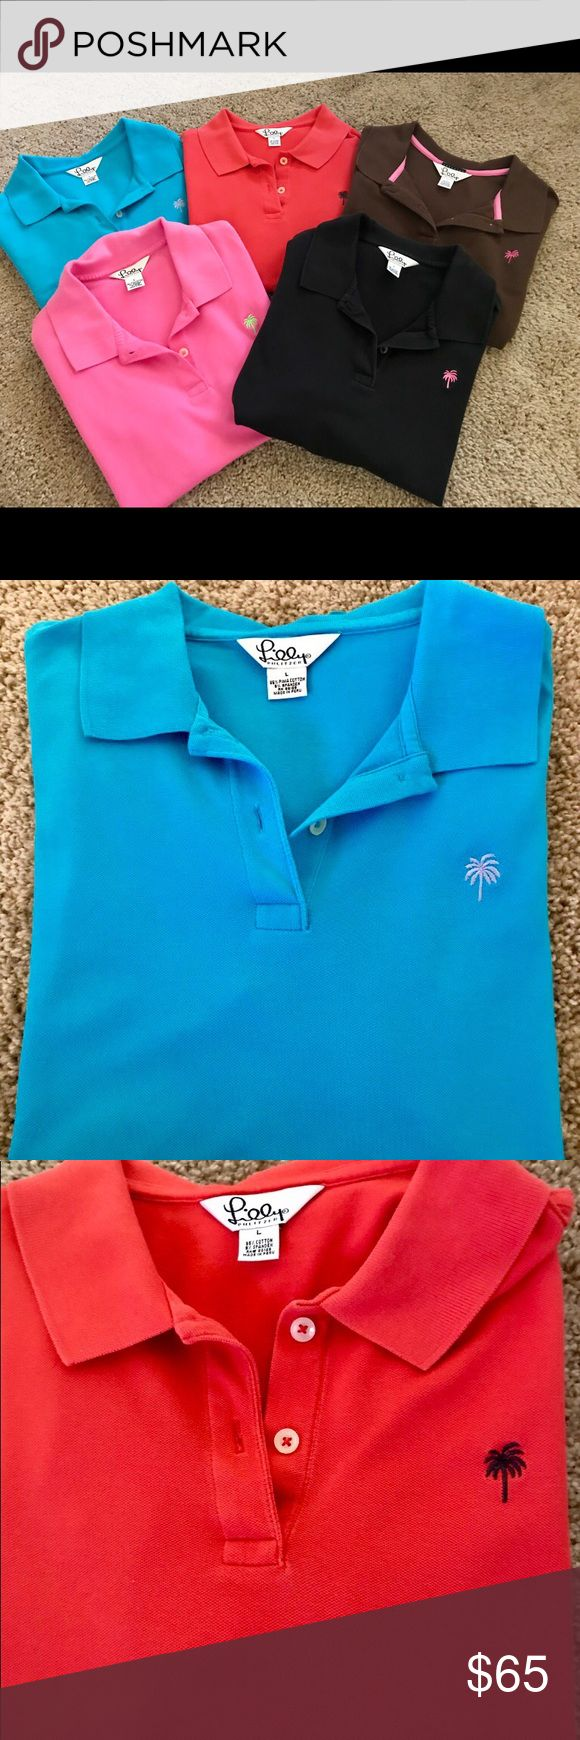 5 Short Sleeve Lilly Pulitzer Polo Shirts Short sleeve. Size Large. Like new. Pink, Red, Black, Brown, Blue. Can be sold separately. Ladies Lilly Pulitzer Tops Tees - Short Sleeve